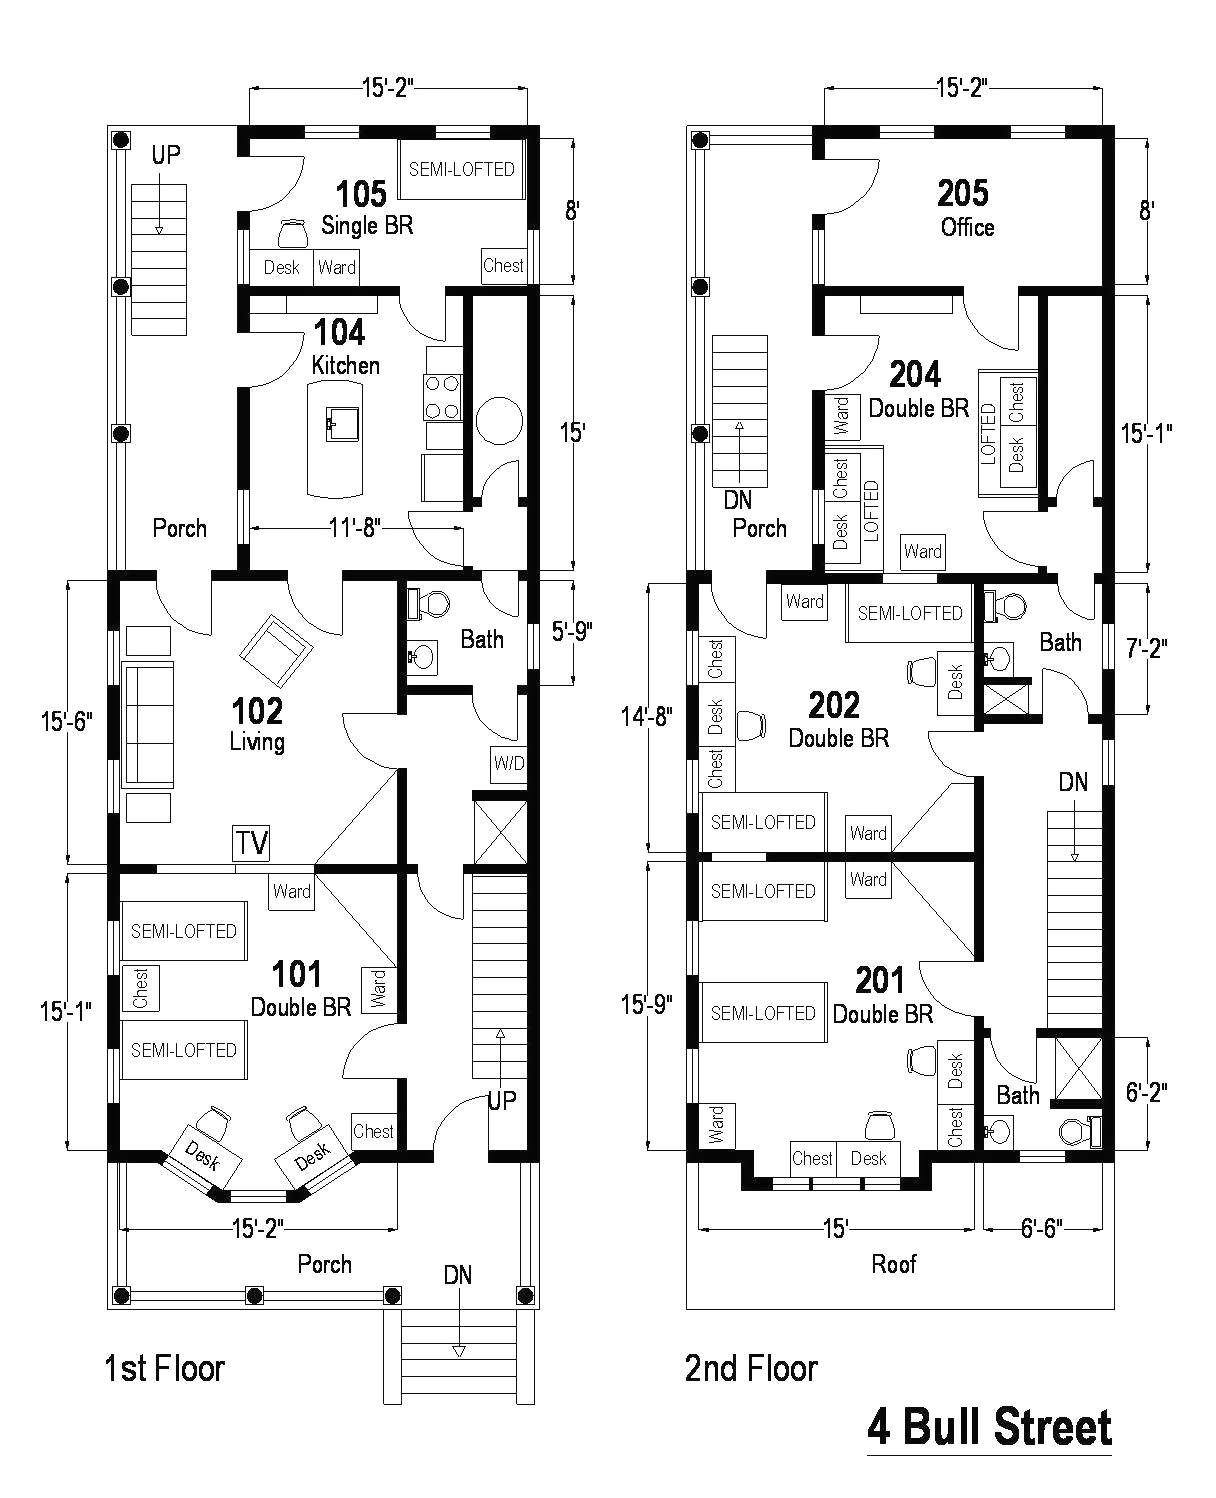 Charleston Style House Plans Tiny Story on 2 story 4 bedroom house plans, 2 story duplex house plans, 2 story open floor house plans, 2 story simple house plans, 2 story craftsman style house plans, 2 story georgian house plans, 2 story shotgun house plans, 2 story modern house plans, simple small house floor plans, 2 story traditional house plans, 2 story brick house plans, 2 story workshop plans, 2 story guest house plans, 2 story cape house plans, 2 story townhouse plans, 2 story cottage plans, 2 story habitat house plans, 2 story mountain house plans, 2 story shipping container house plans, 2 story narrow house plans,